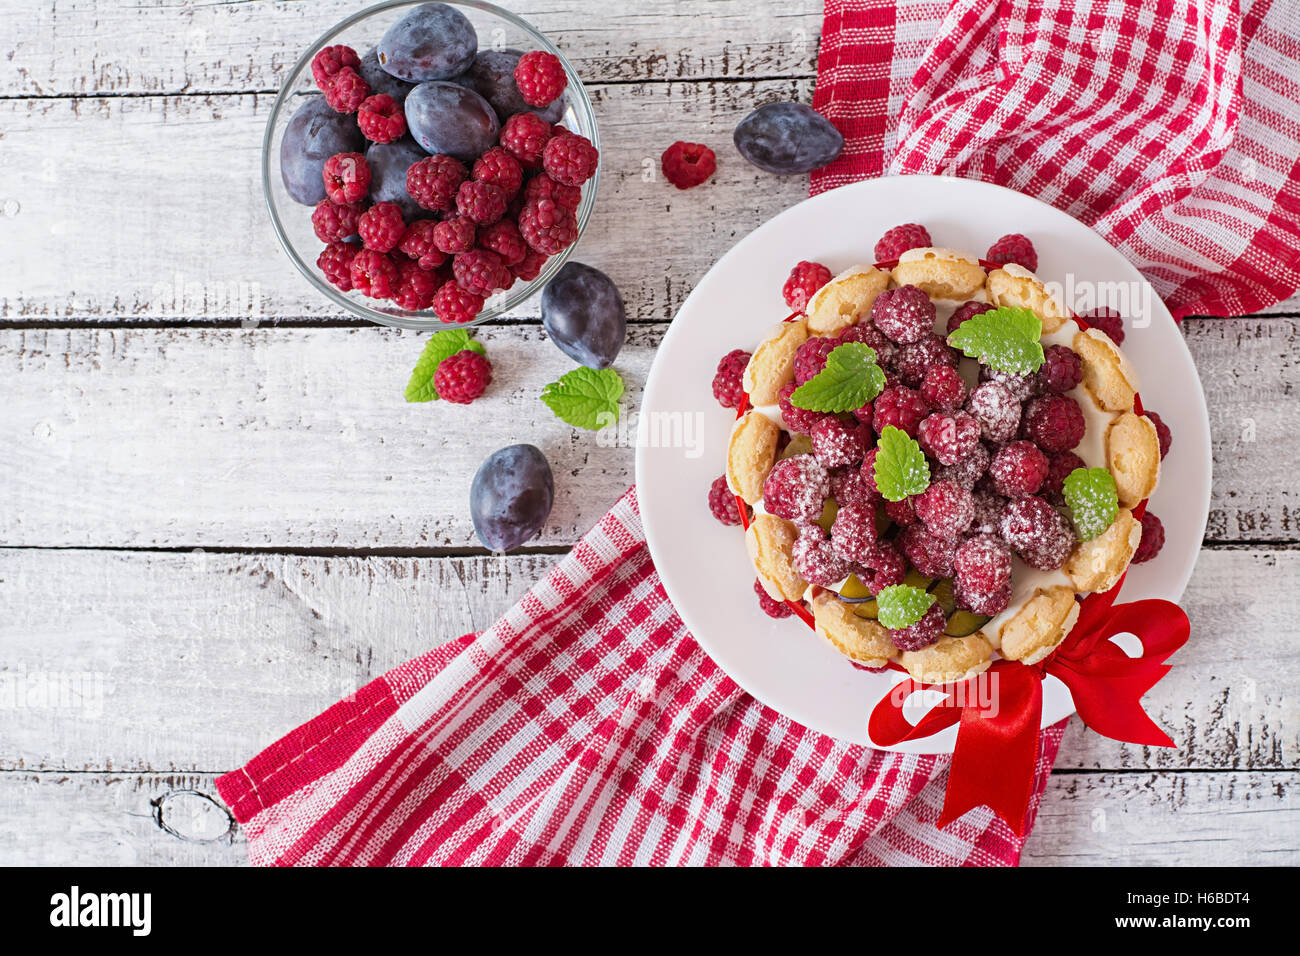 Cake 'Charlotte ' with raspberries and plums. Top view - Stock Image